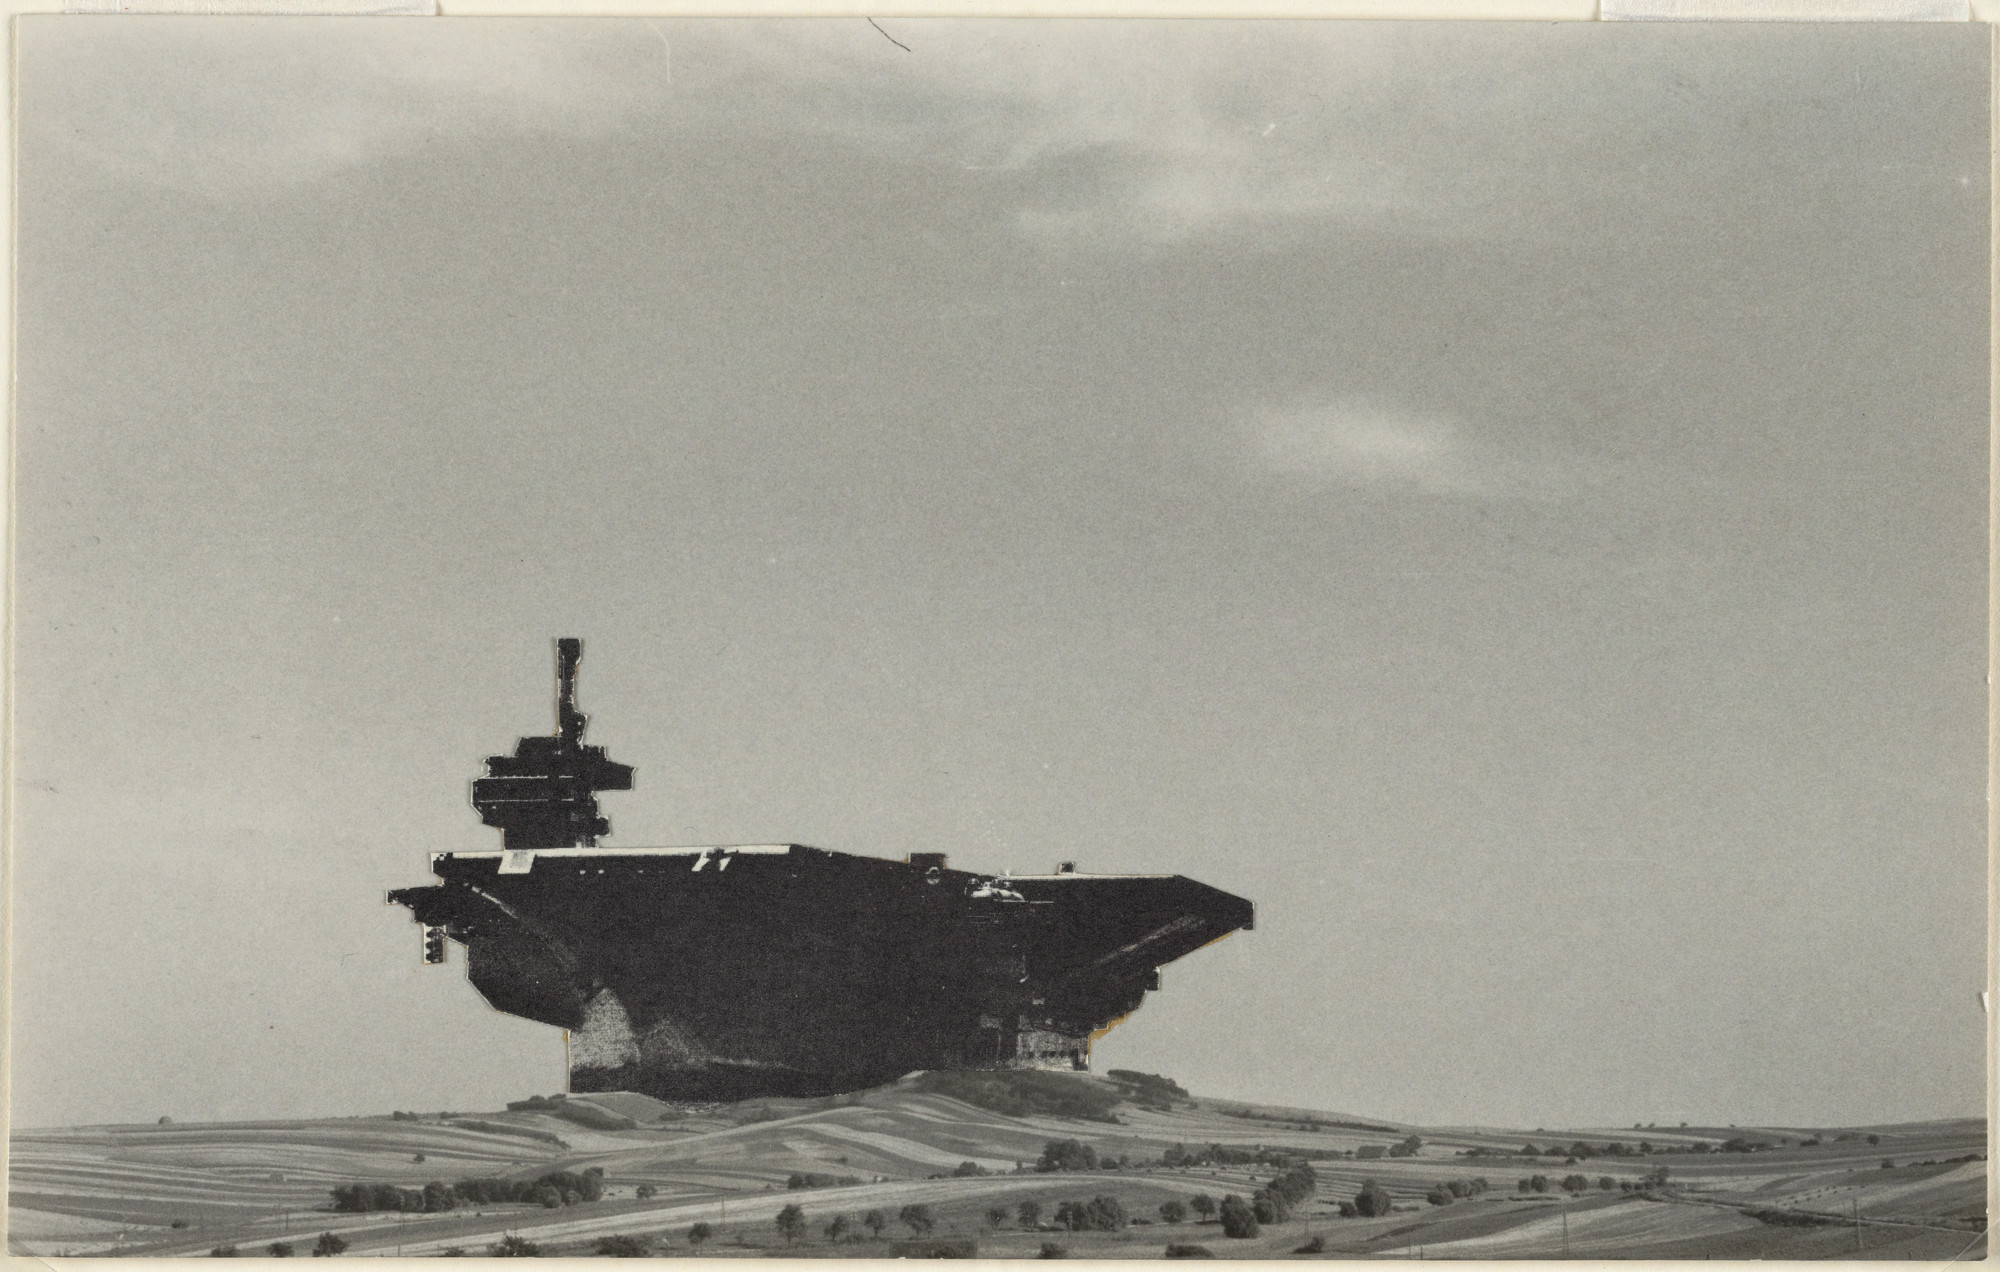 Hans Hollein. Aircraft Carrier City in Landscape, project, Perspective. 1964